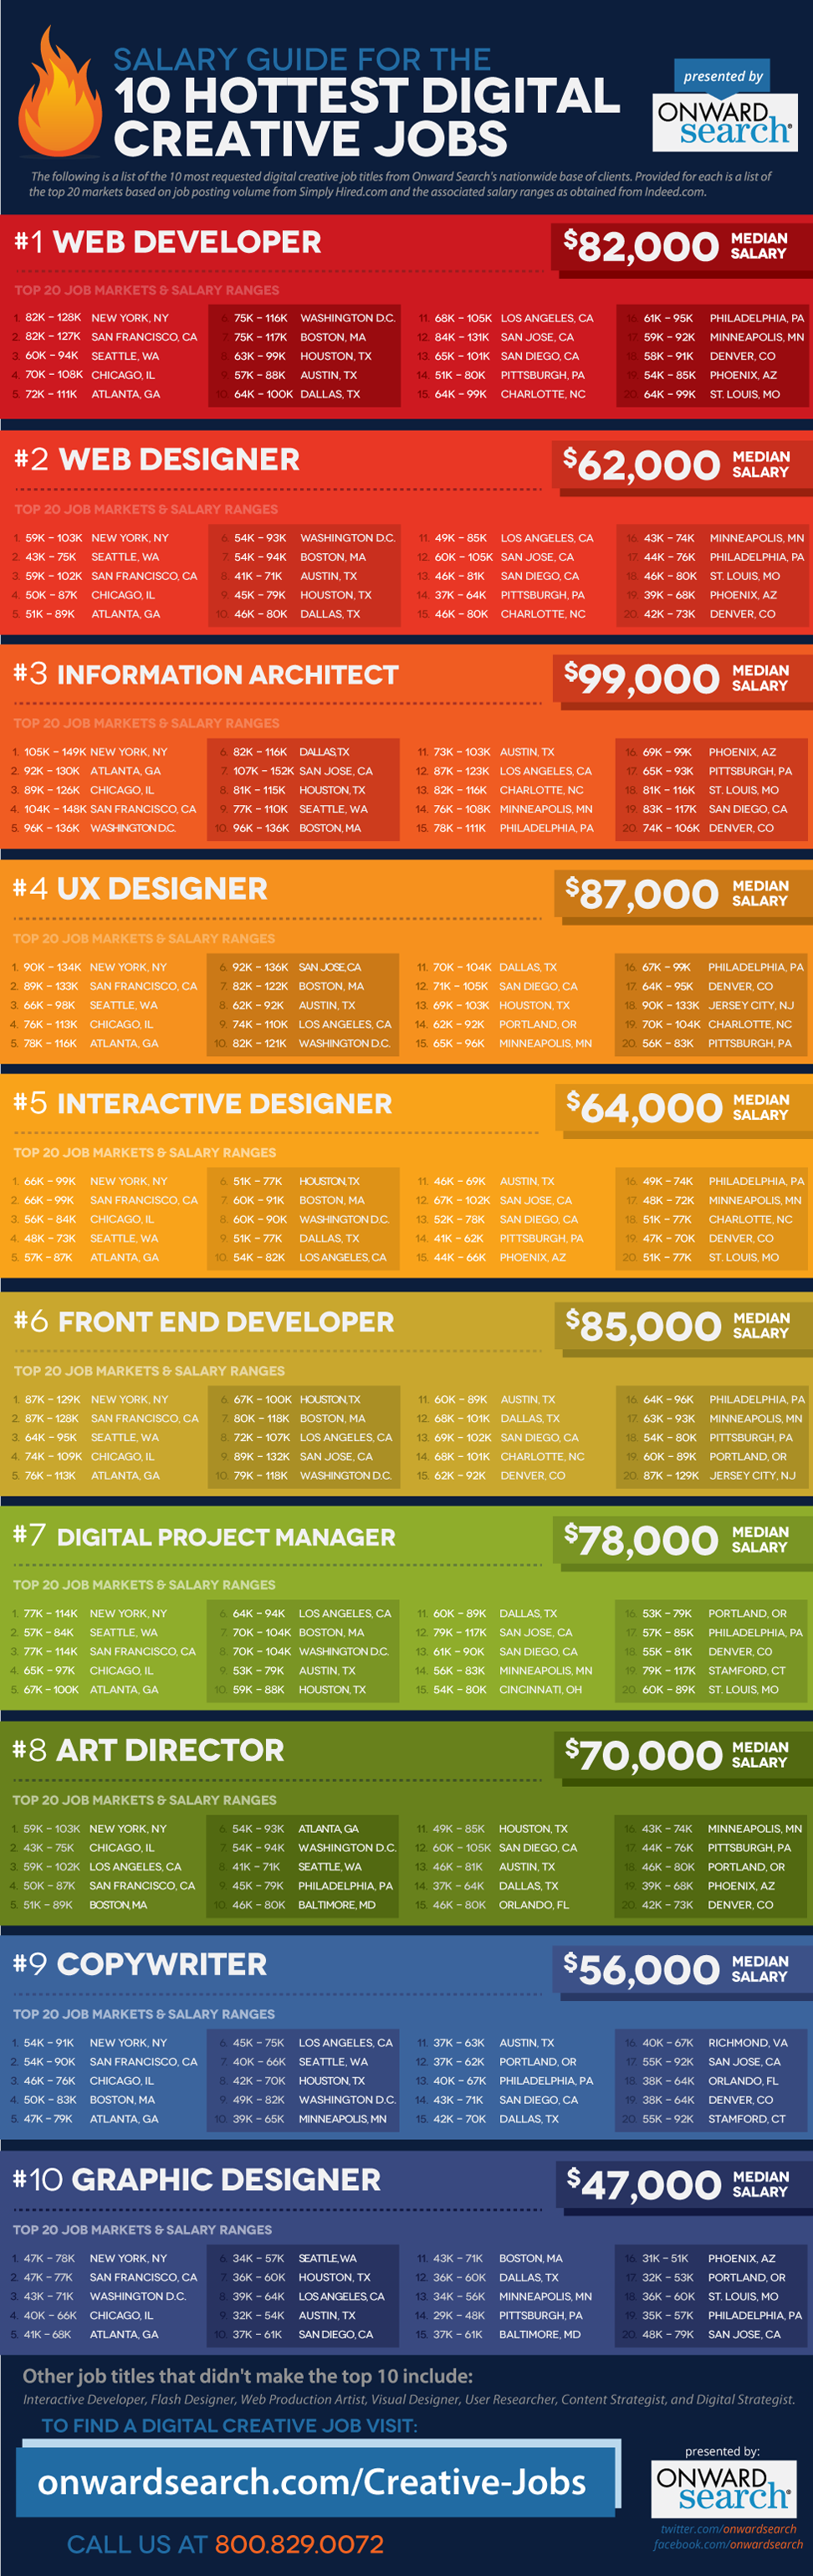 Digital-Creative-Jobs-Salary-Guide